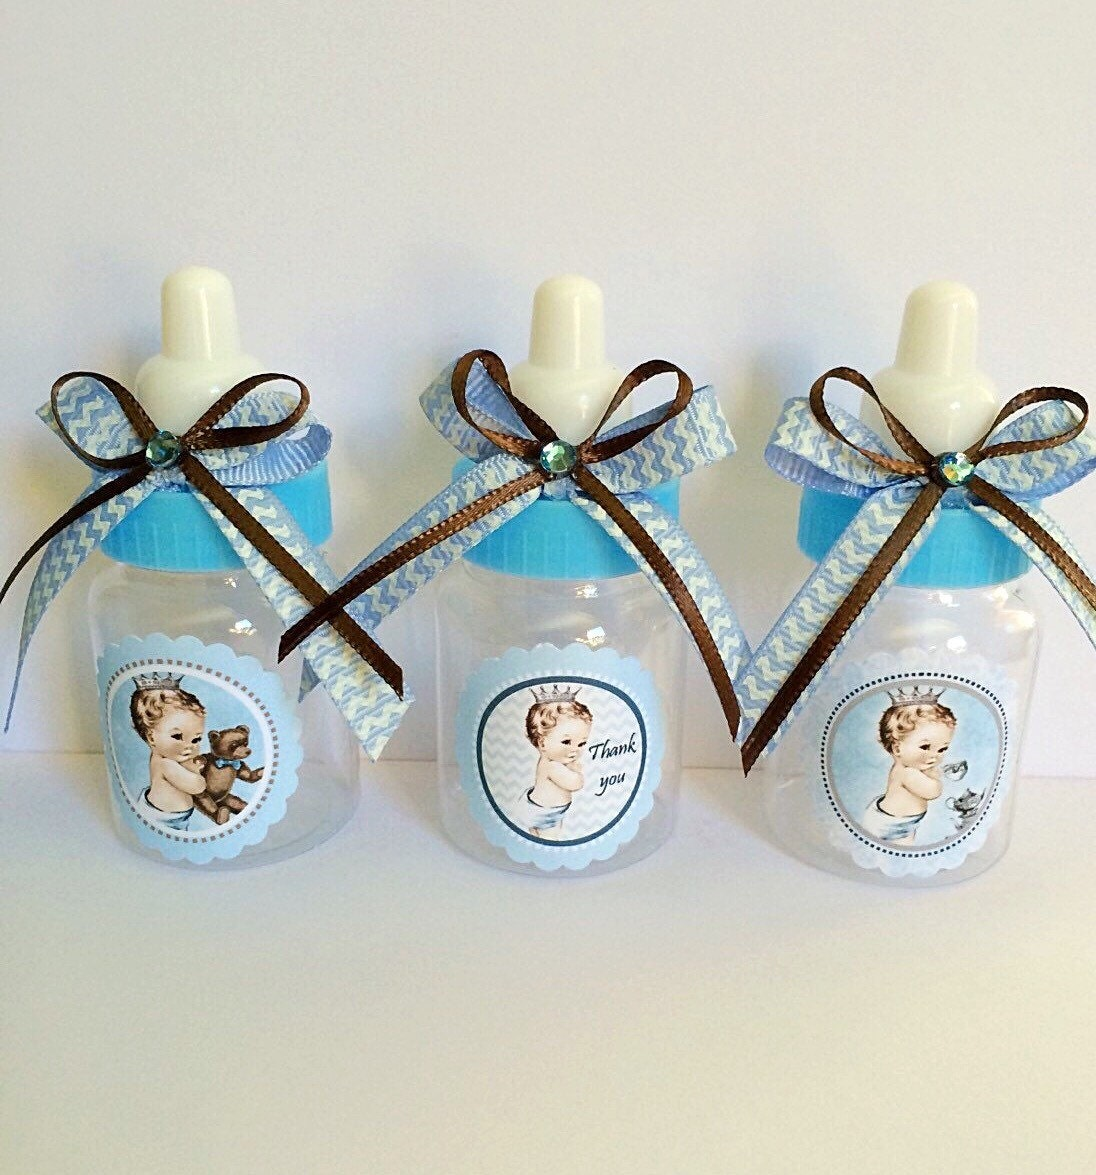 Prince Baby Shower Favors: 12 Vintage Little Prince Baby Shower Favors Boy's Baby